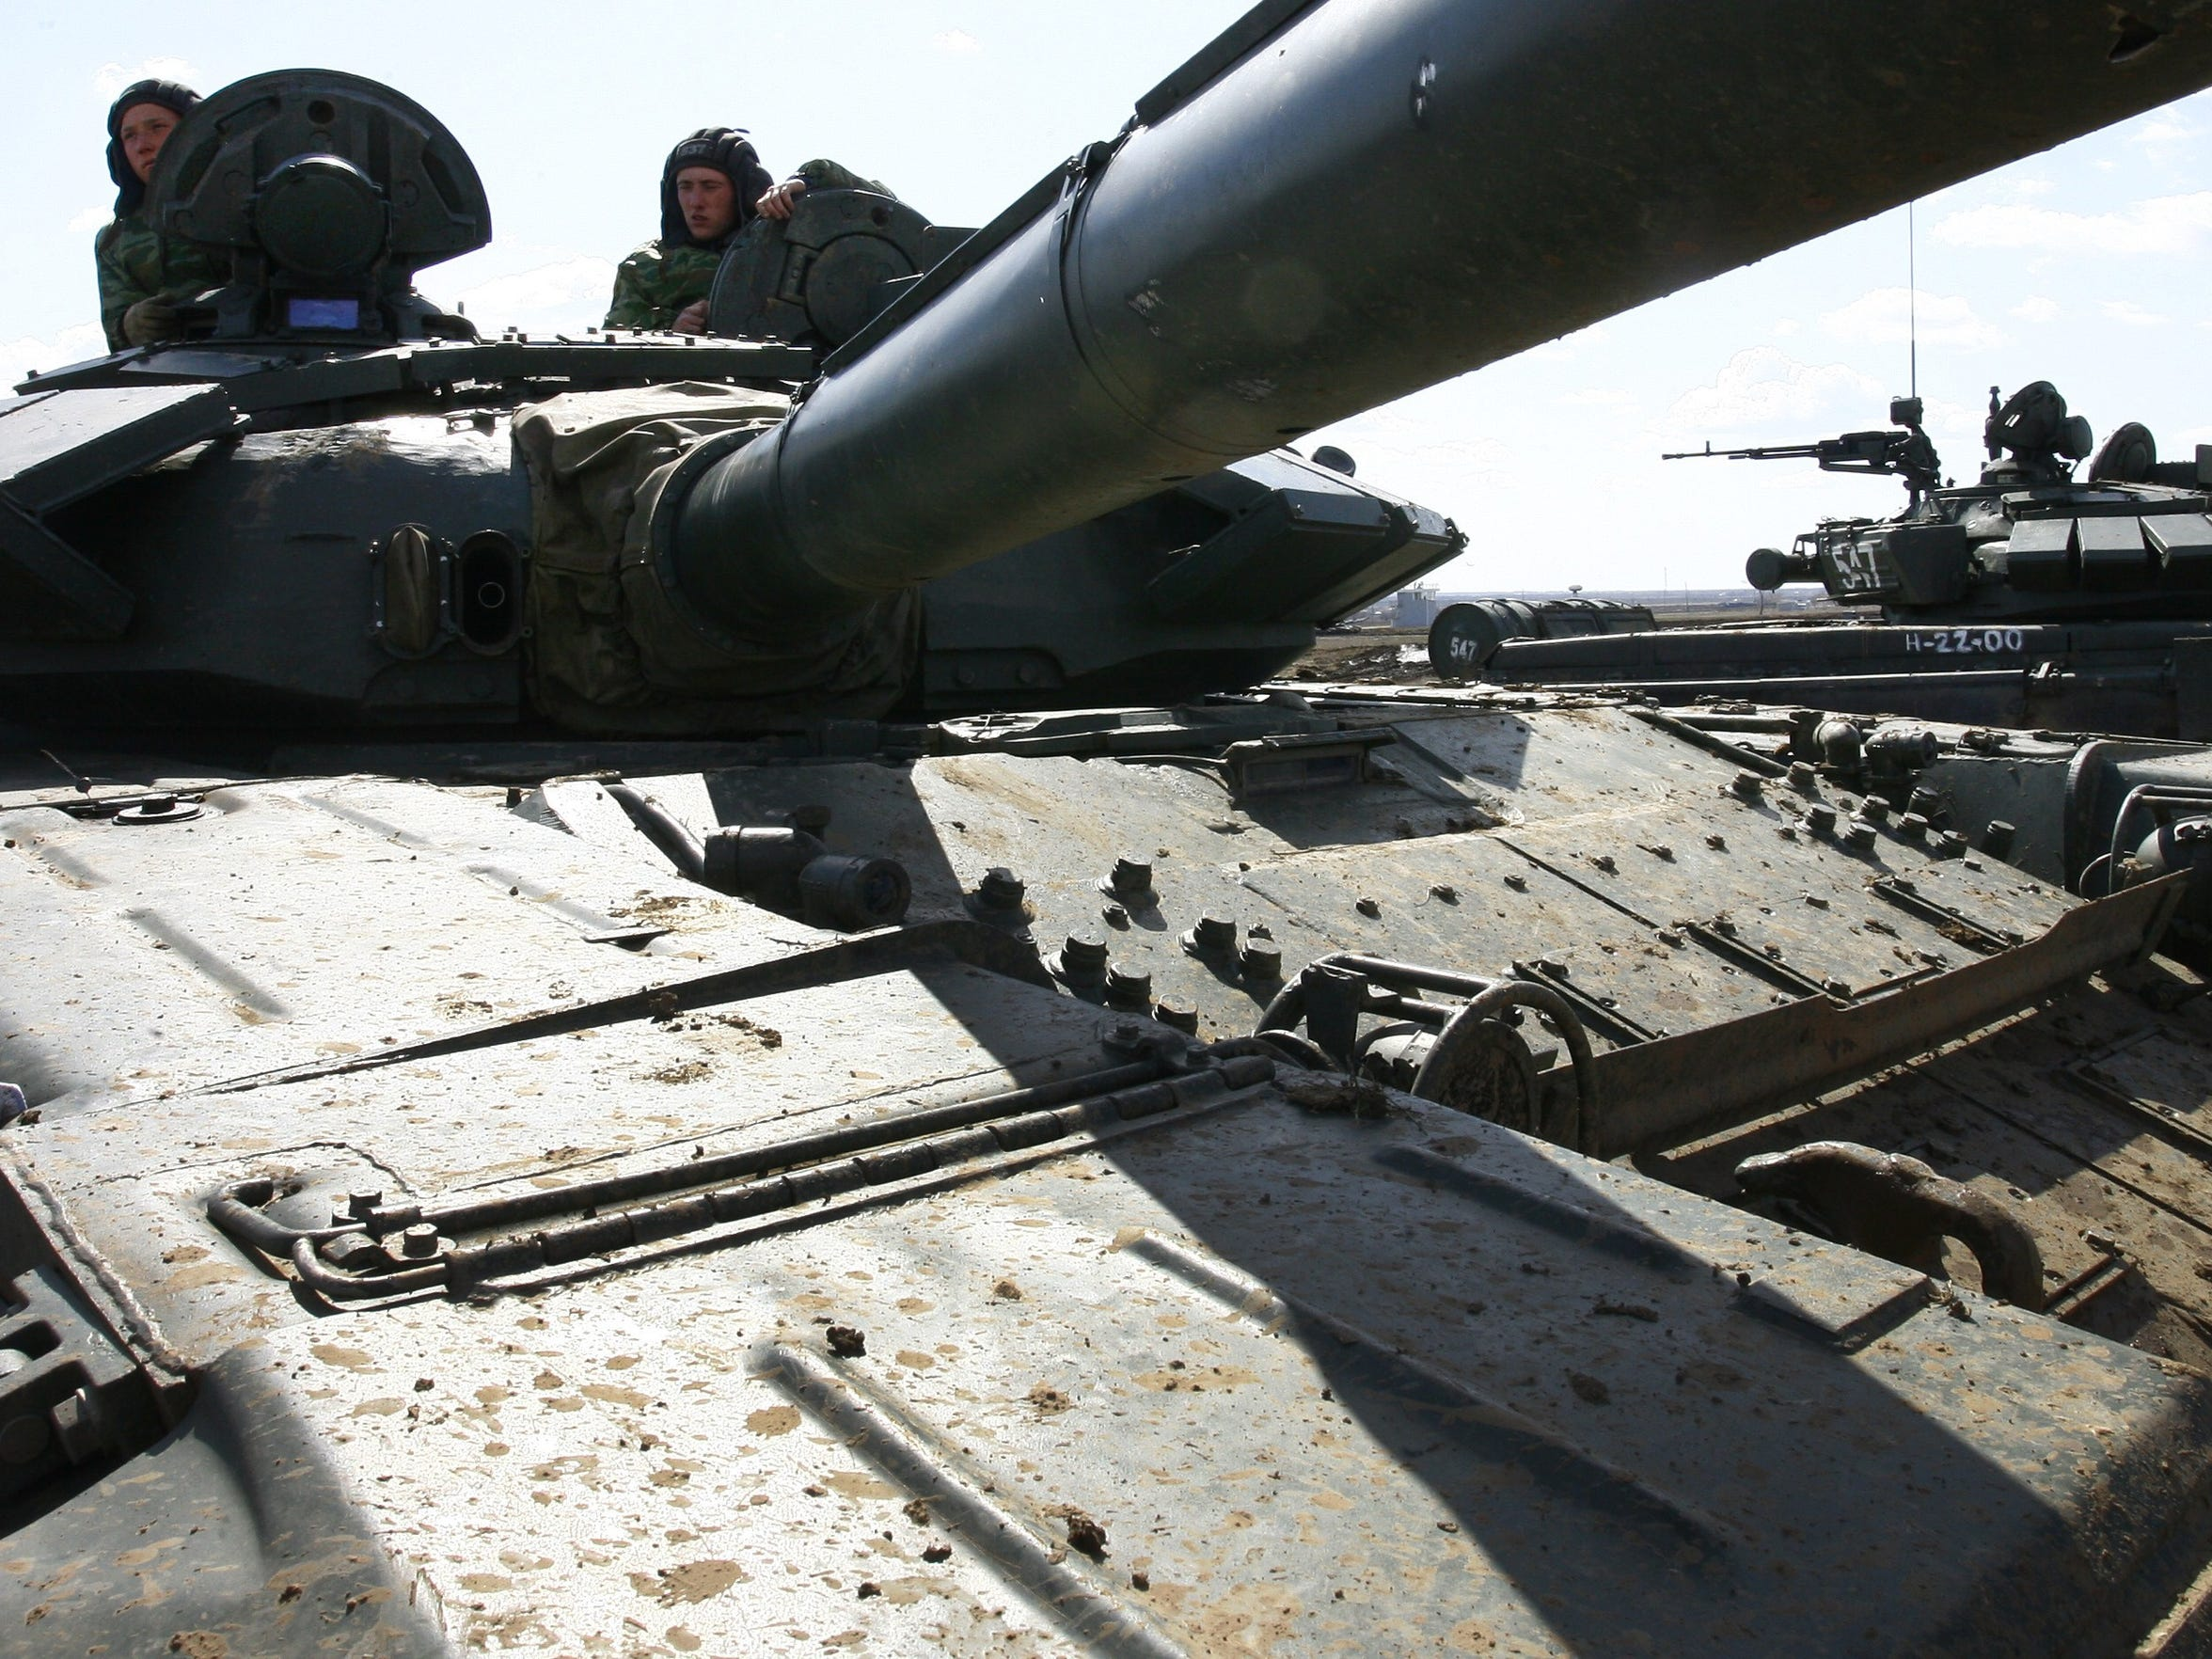 Russia claims to have some 750 tanks in its western